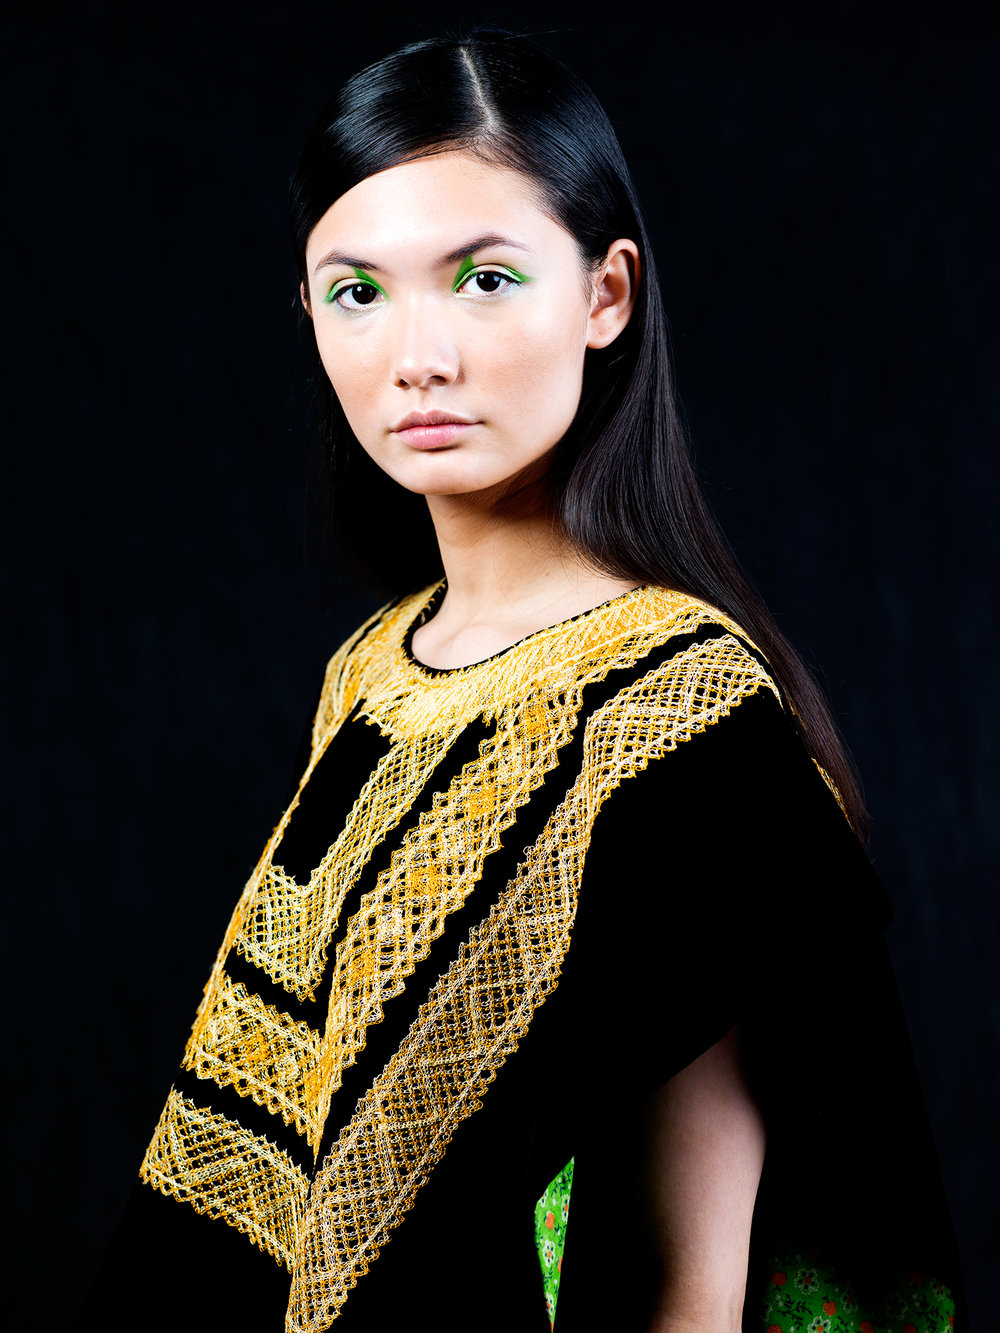 A fashion portrait of a woman wearing an authentic, Oaxacan garment.